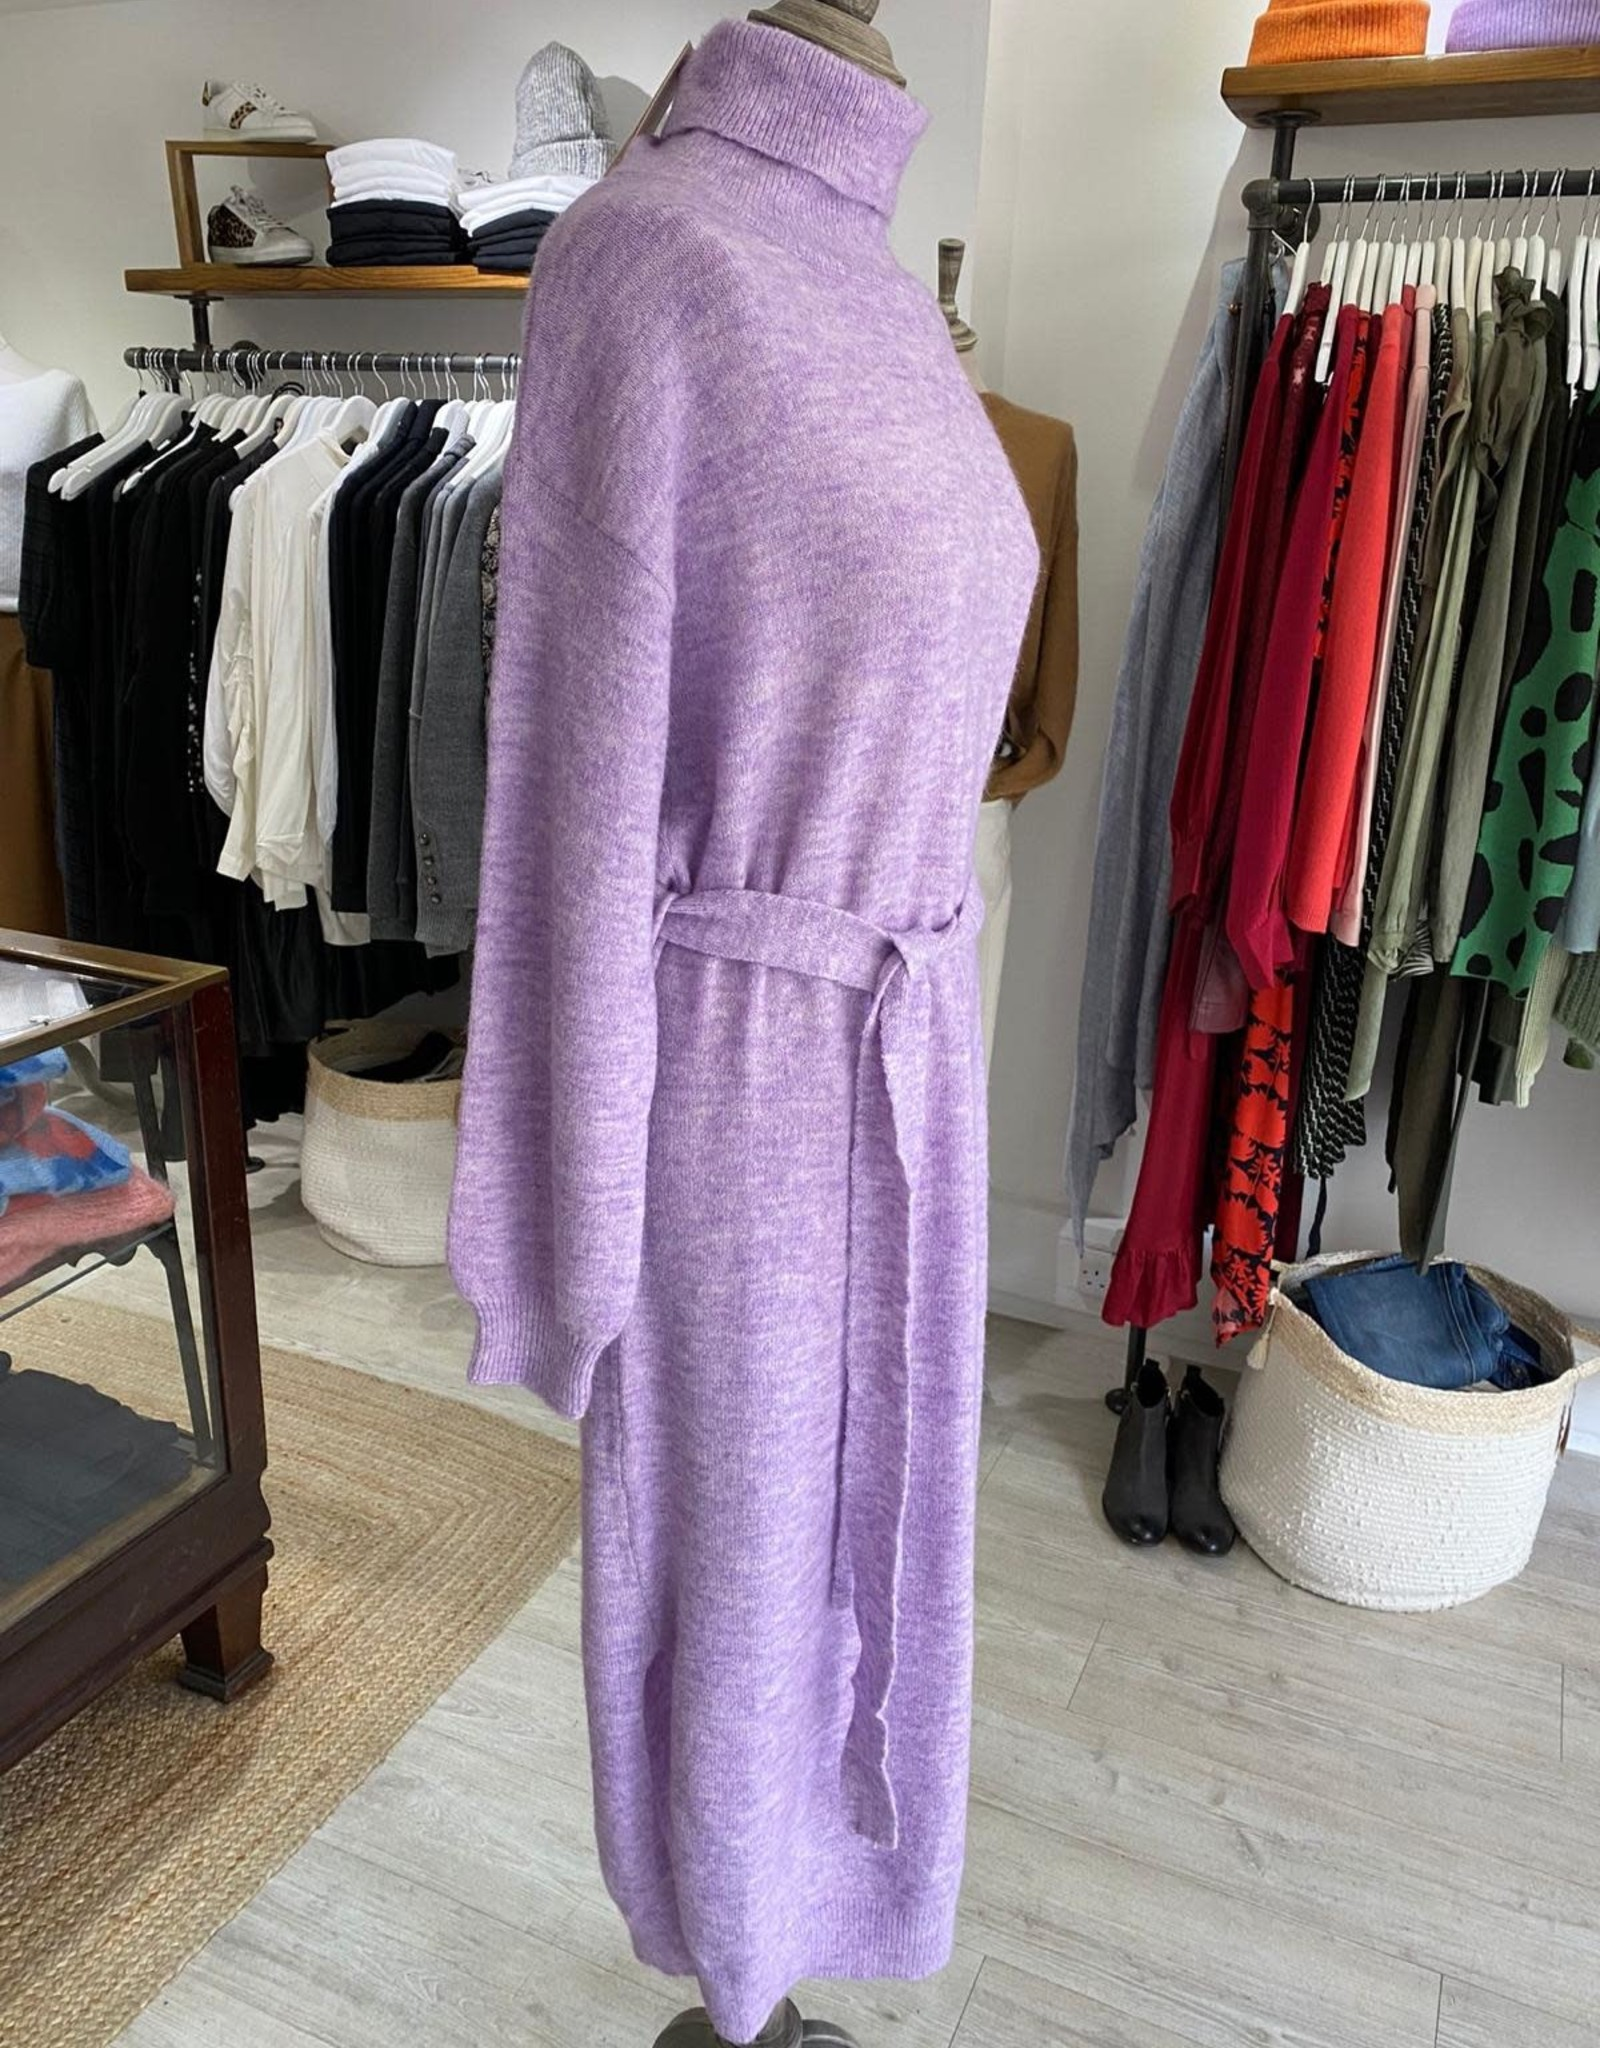 FRNCH AMORE KNITTED DRESS  MS21-46 BY FRNCH